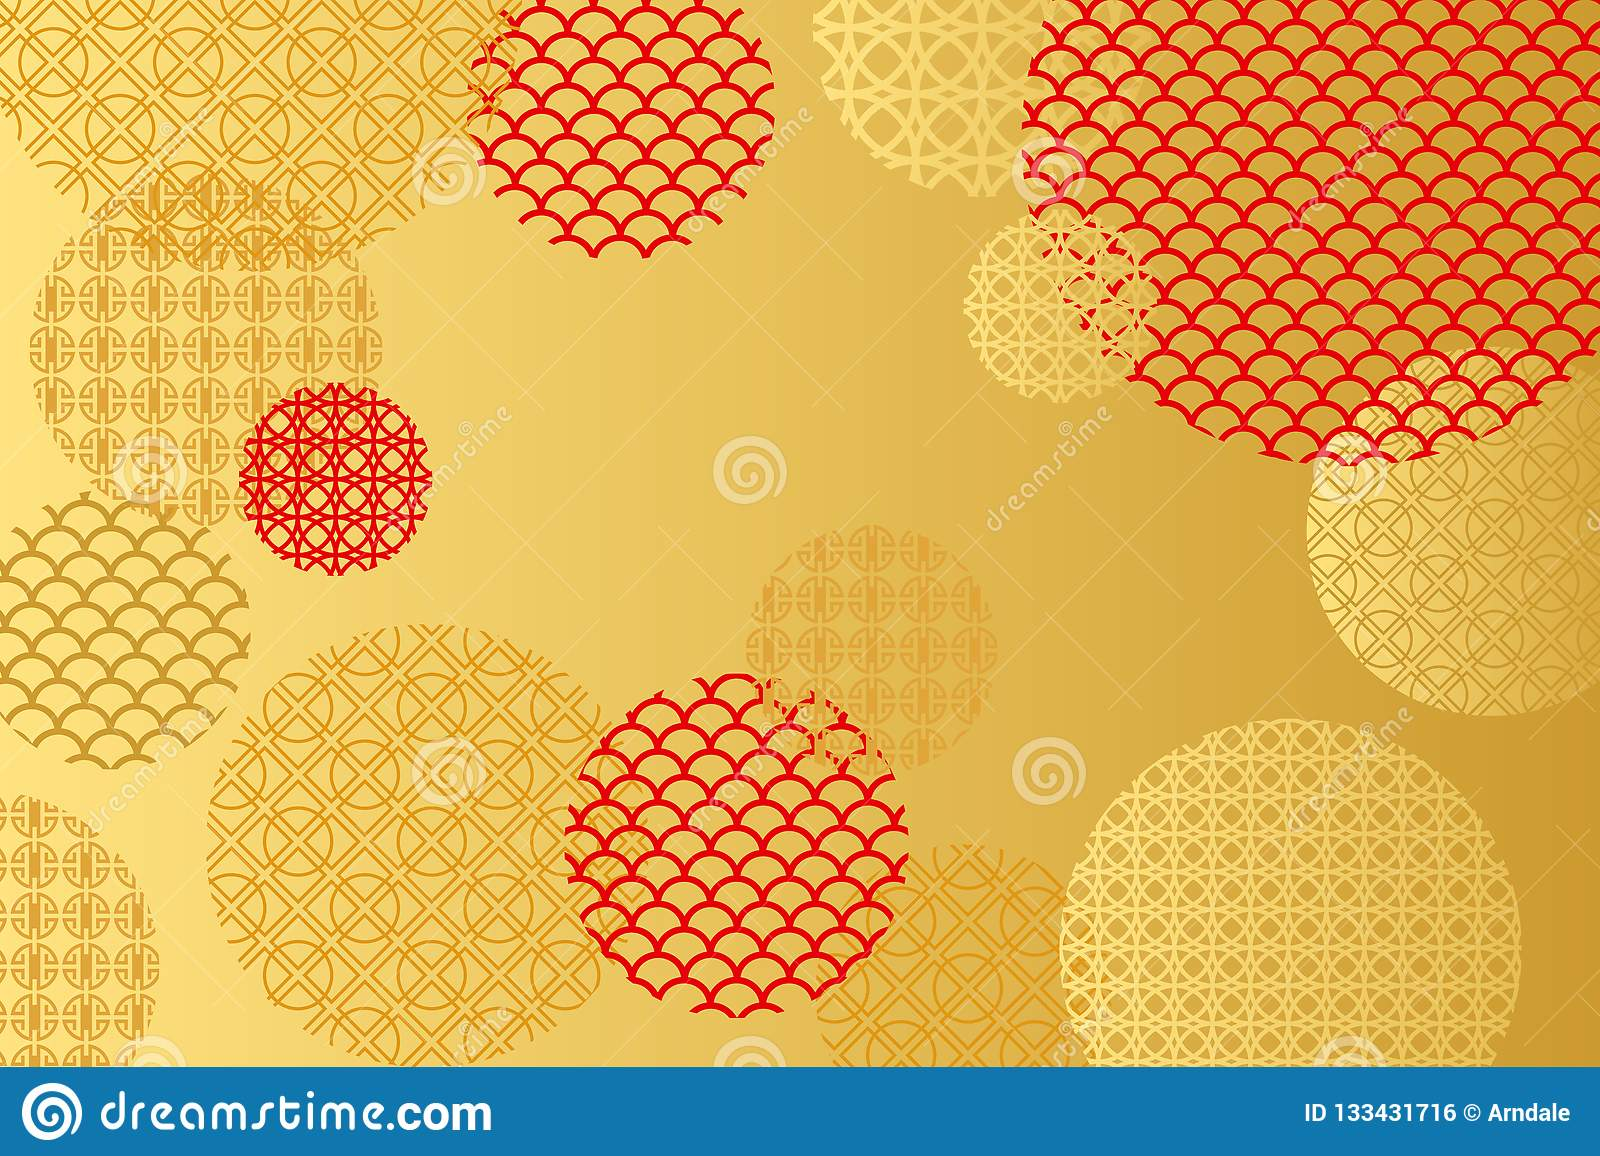 red and gold background for chinese new year greeting card stock vector illustration of symbol frame 133431716 https www dreamstime com red gold background chinese new year greeting card vector eps red gold background chinese new year greeting card image133431716